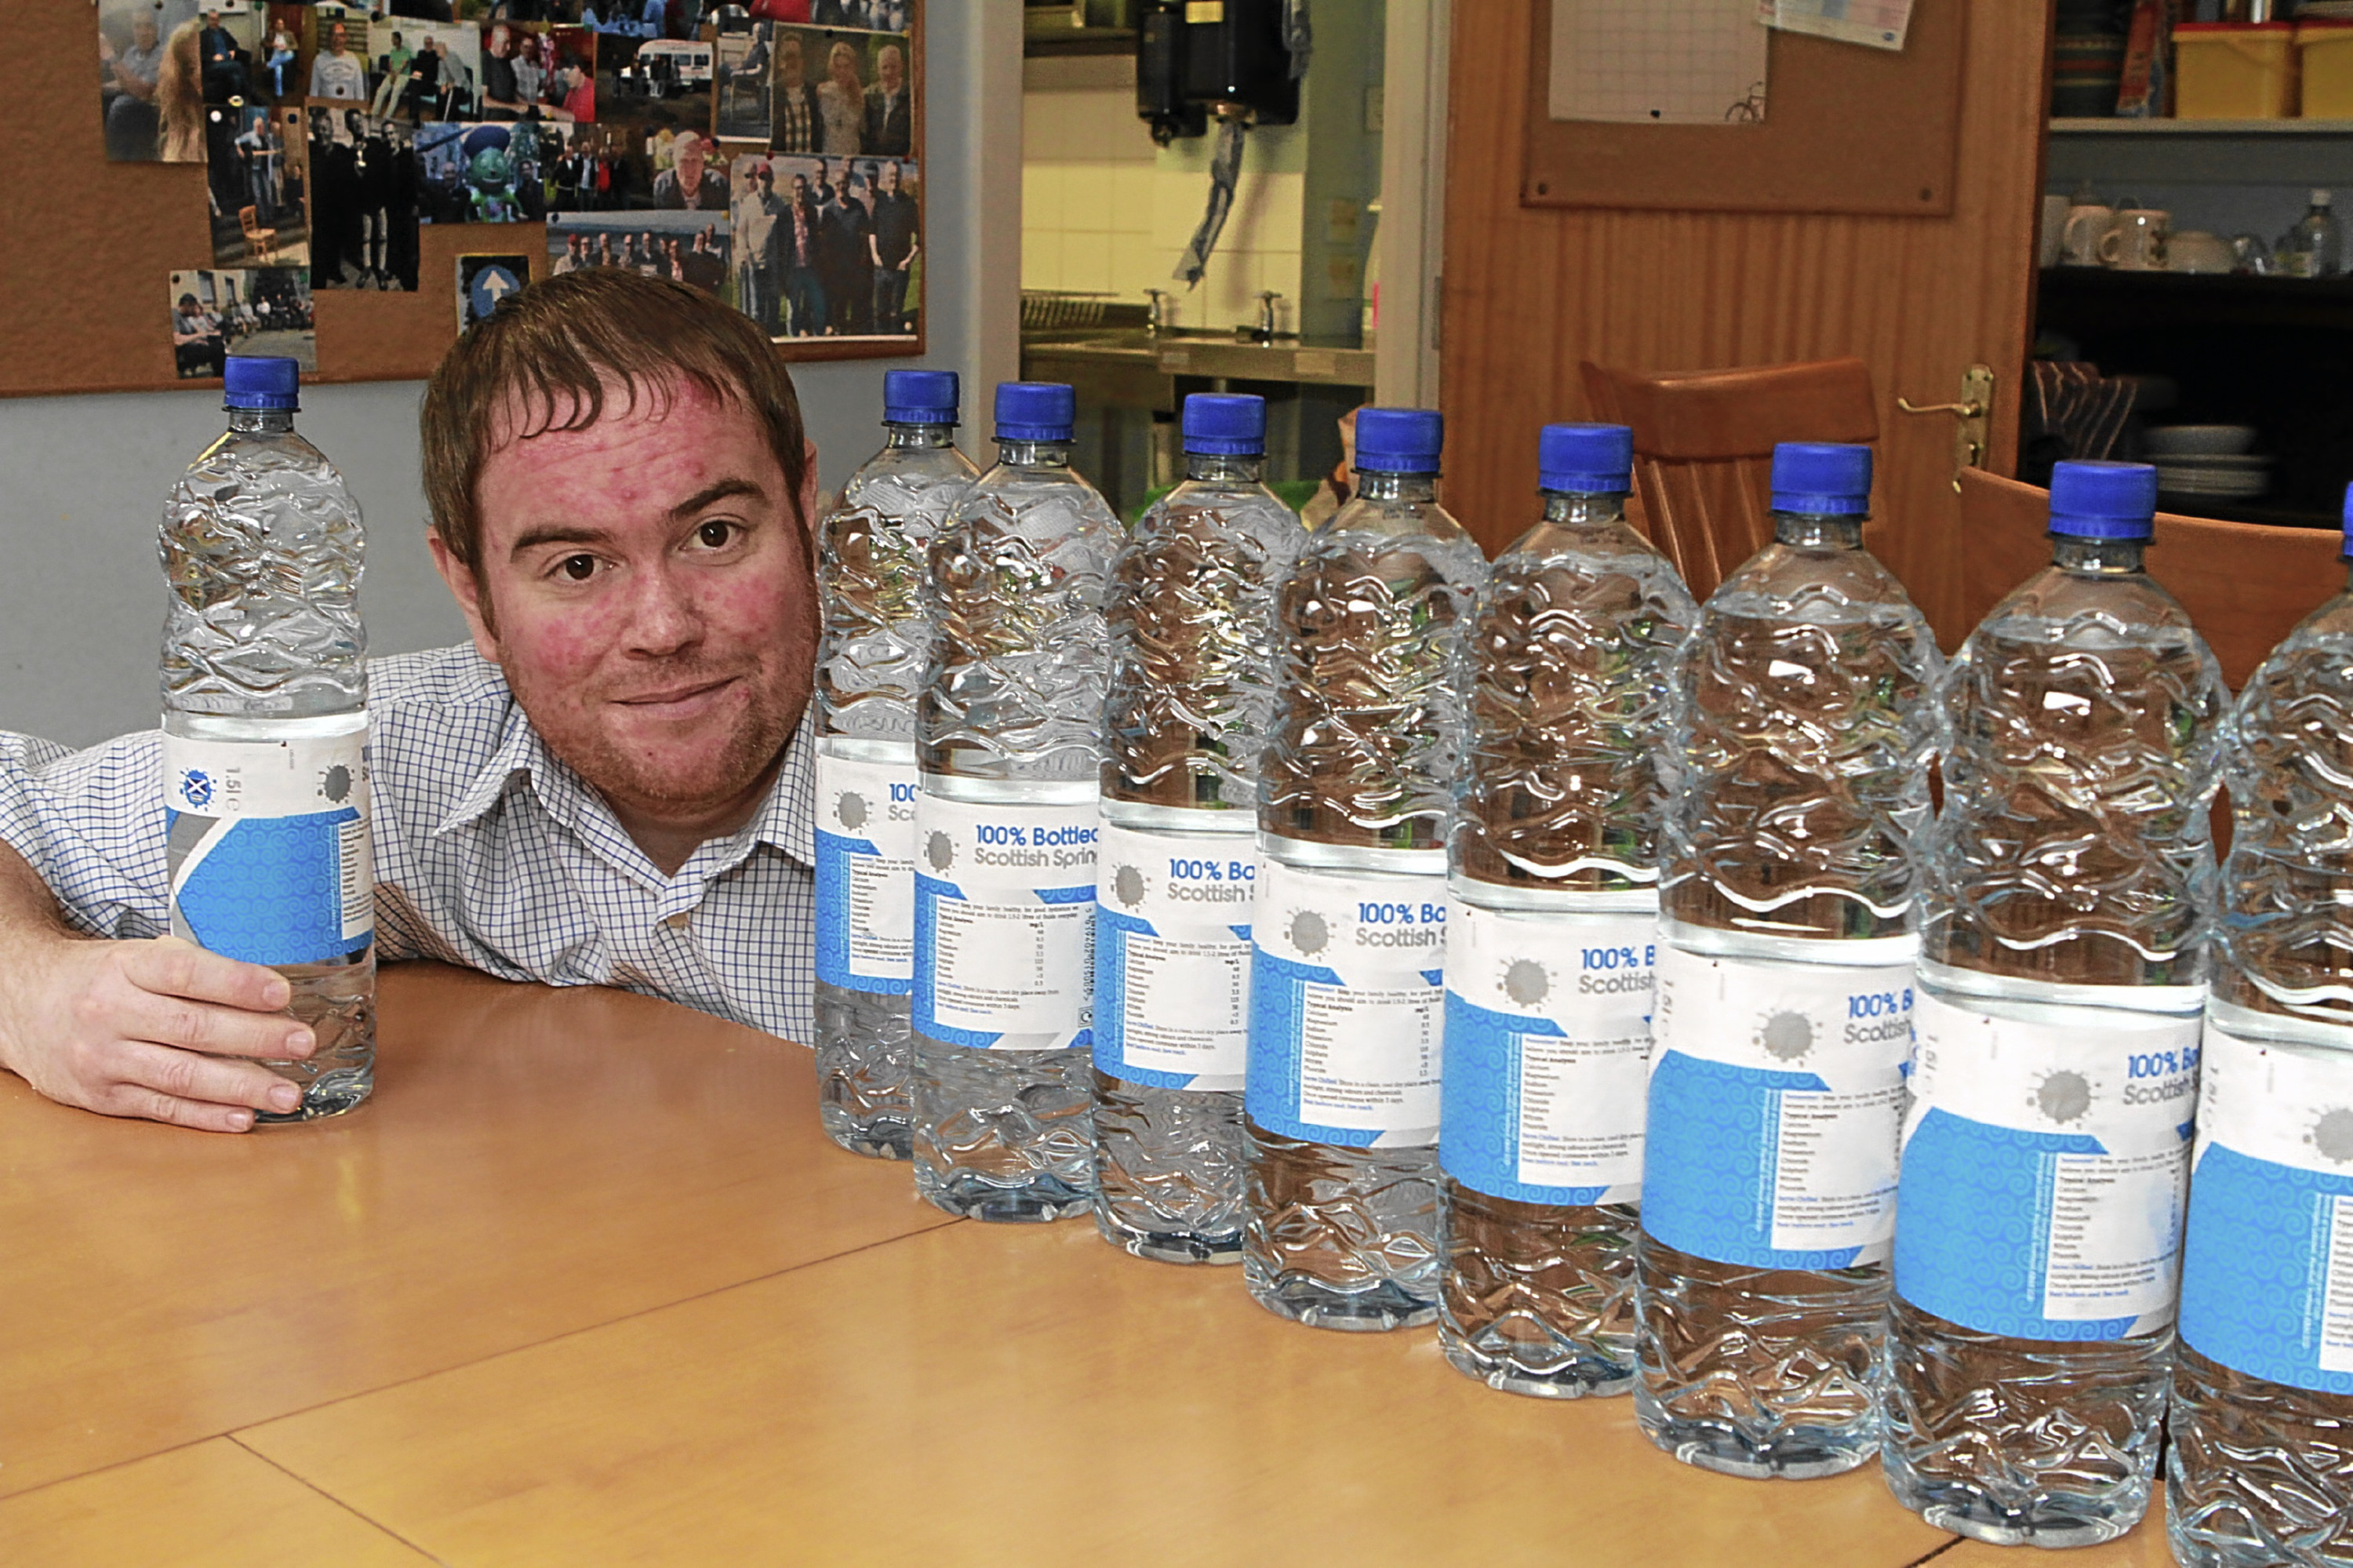 Kevin would drink up to 16 litres a day, the same as ten of these large bottles of water